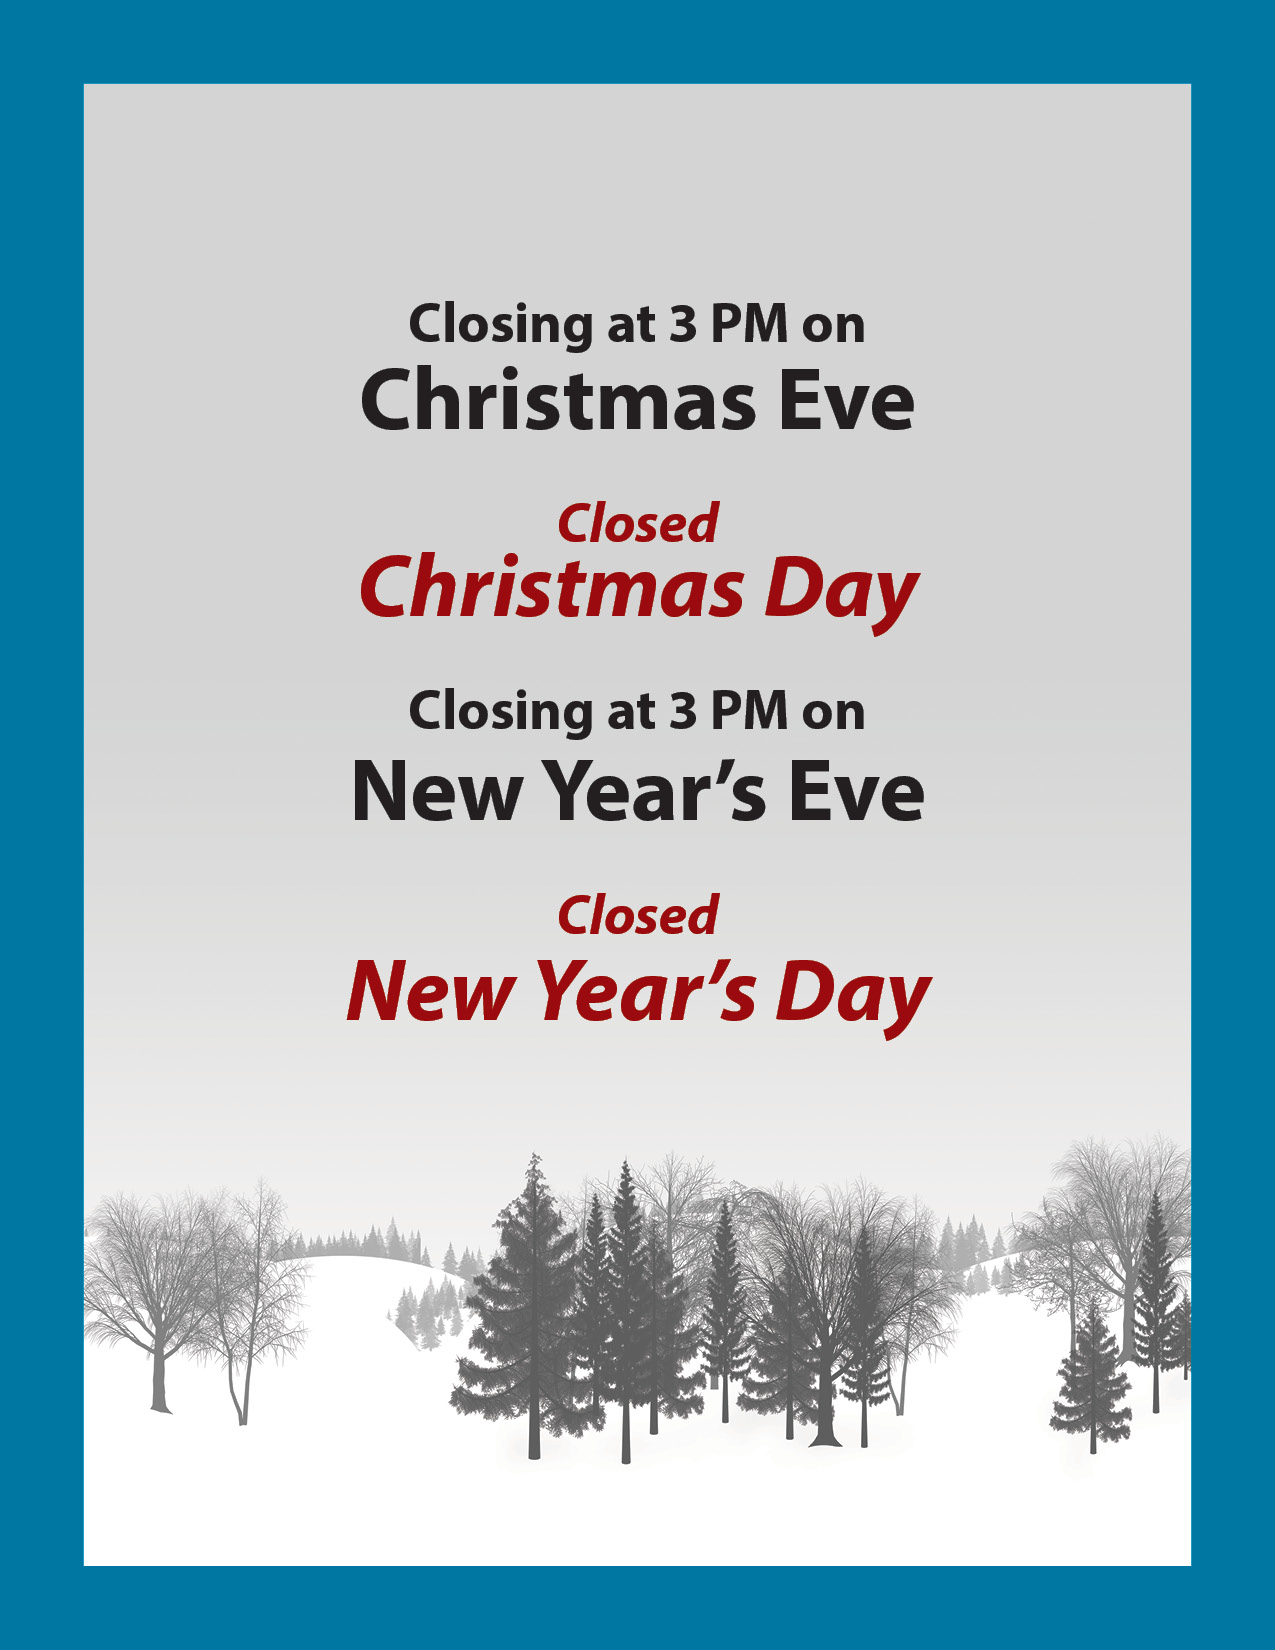 A.B. Martin's Holiday Hours and Closures - A. B. Martin Roofing Supply